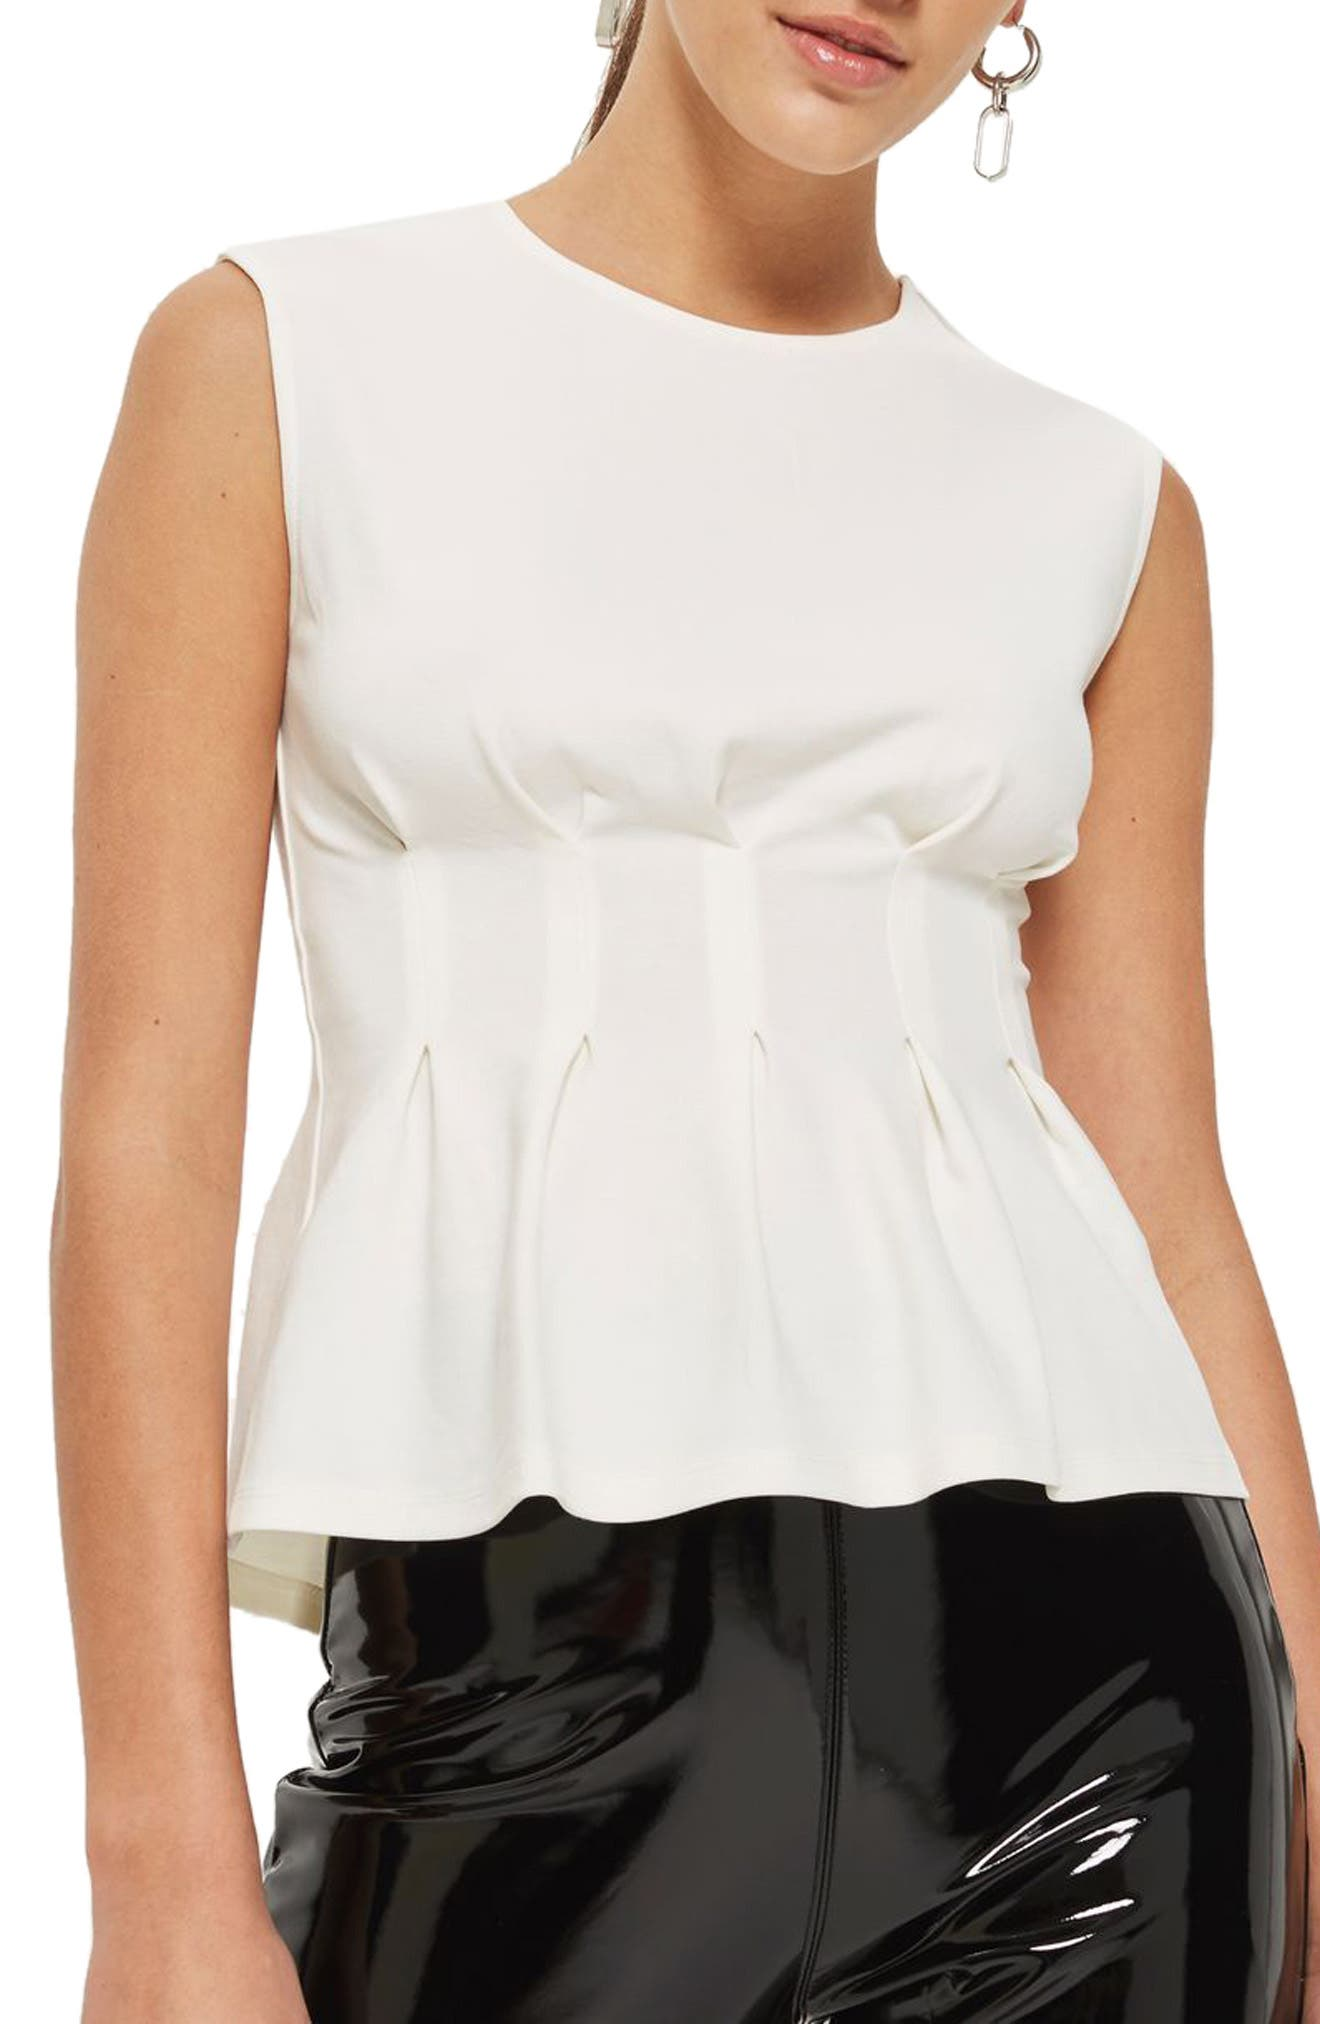 Cinched Waist Sleeveless Blouse,                         Main,                         color, 900